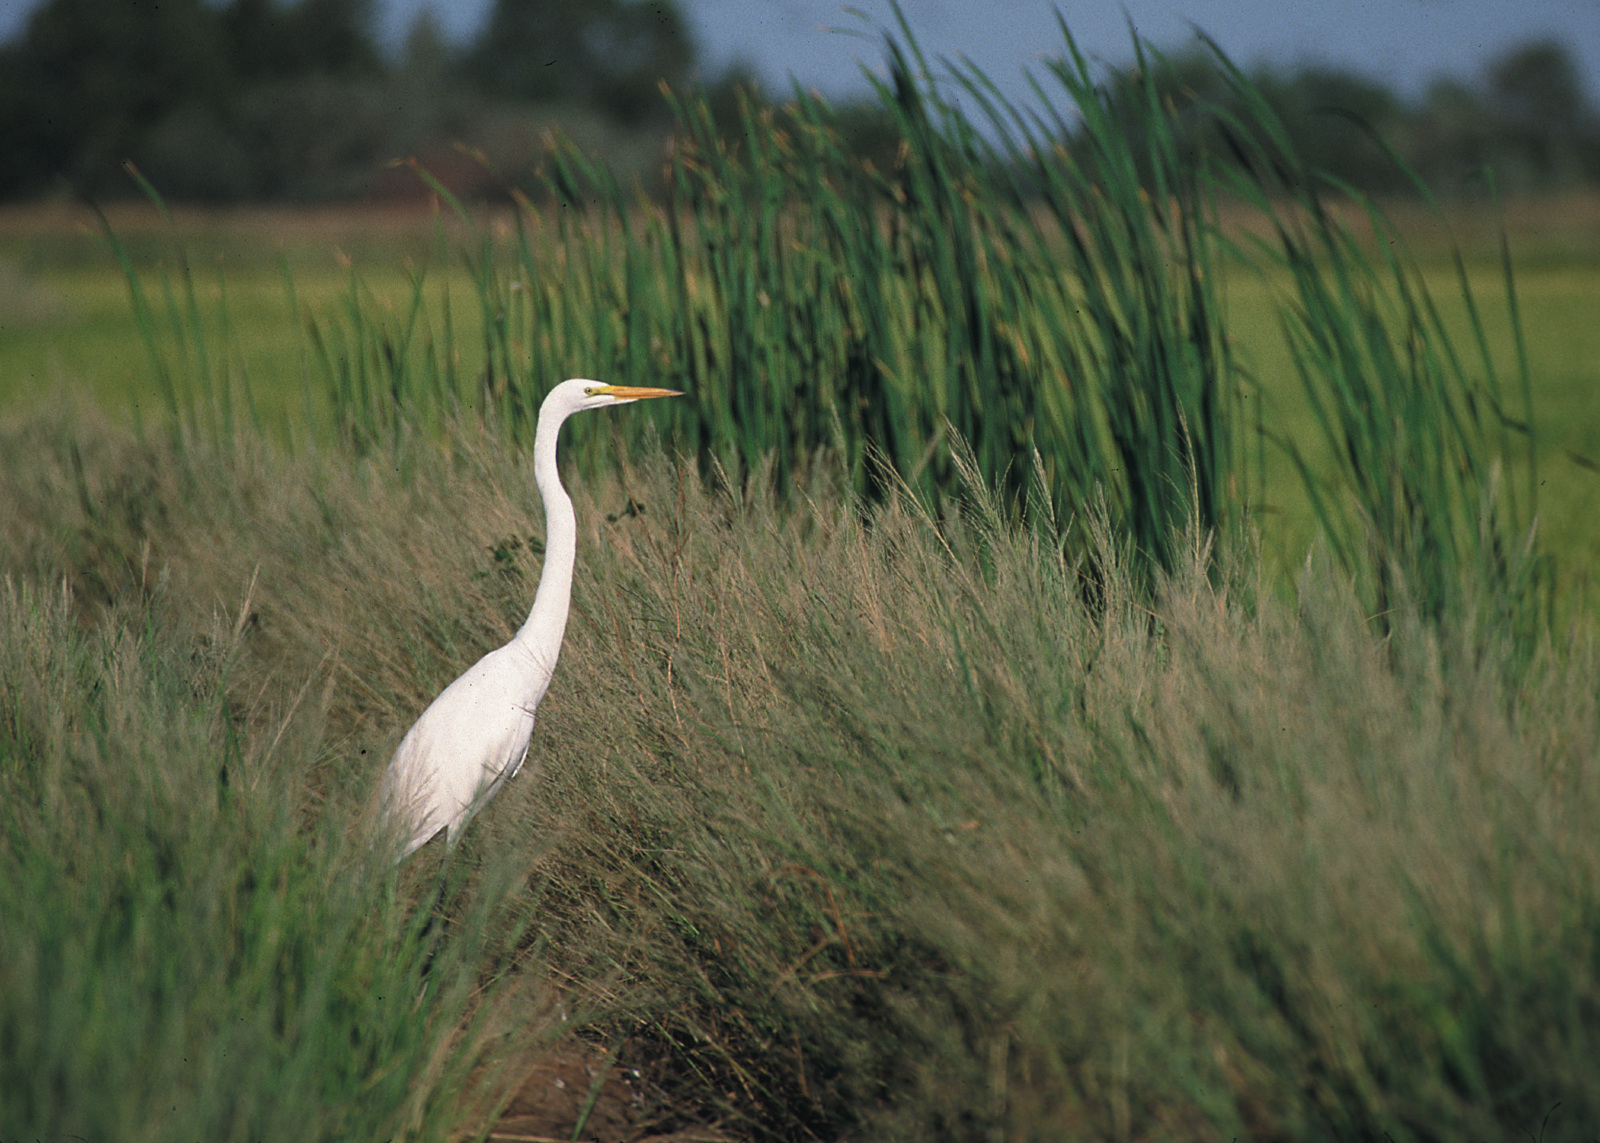 Egret in Grass Buffer– one of the conservation practices highlighted by the new report. Photo credit: Gary Kramer NRCS, USDA